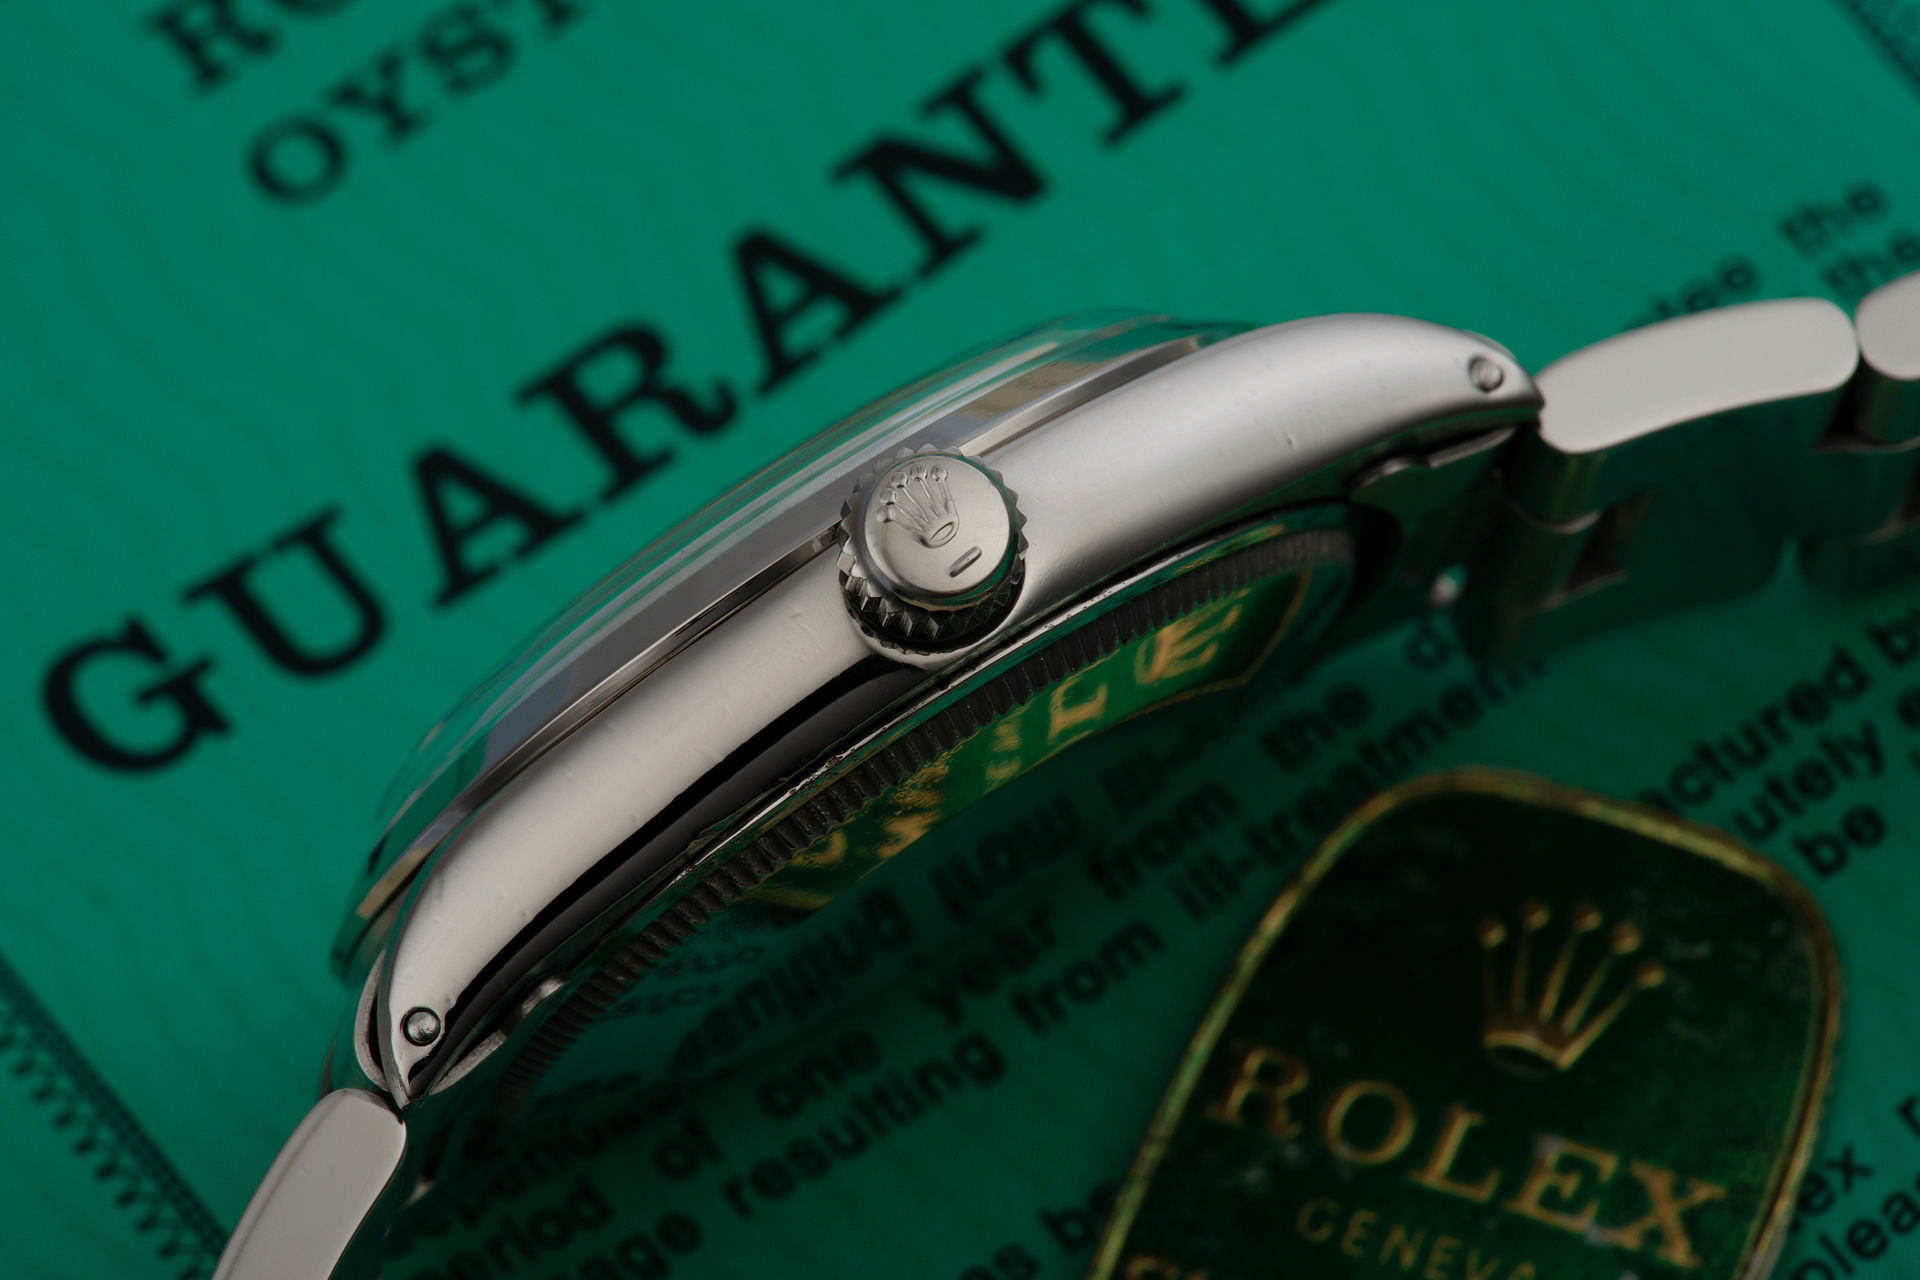 ref 1002 | '1968 Chronometer Certificate' | Rolex Oyster Perpetual